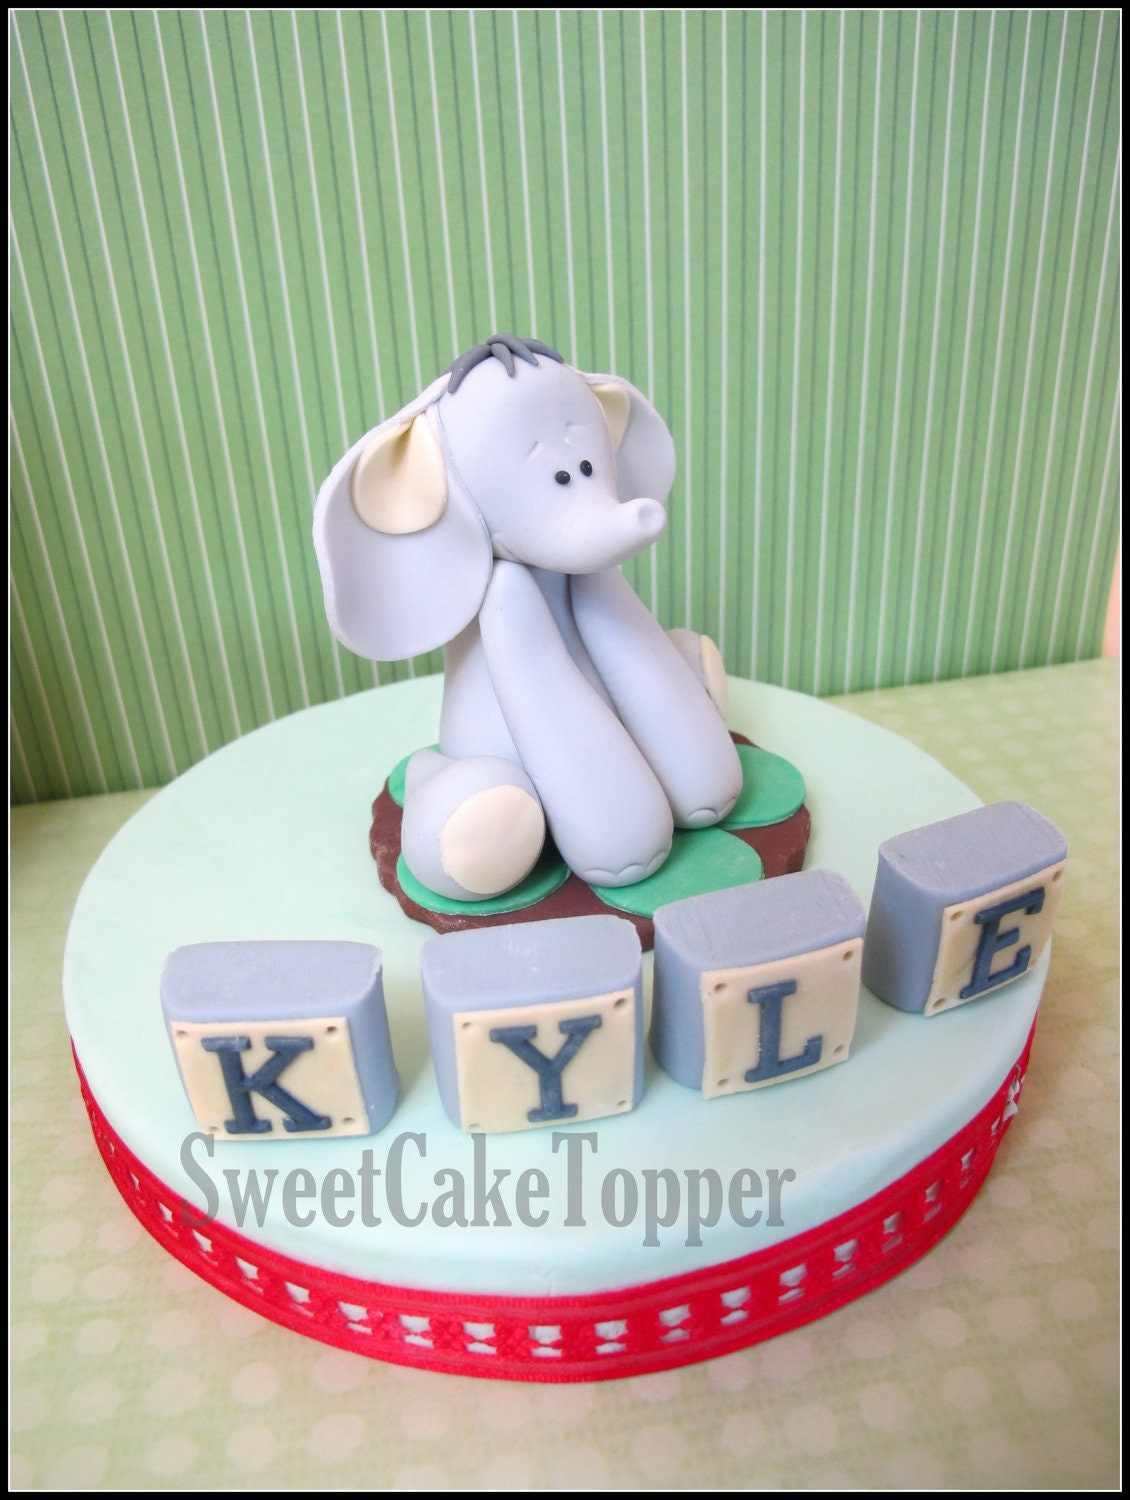 Edible Elephant Cake Decorations : 3 Elephant Fondant Cake Topper Handmade Edible by ...